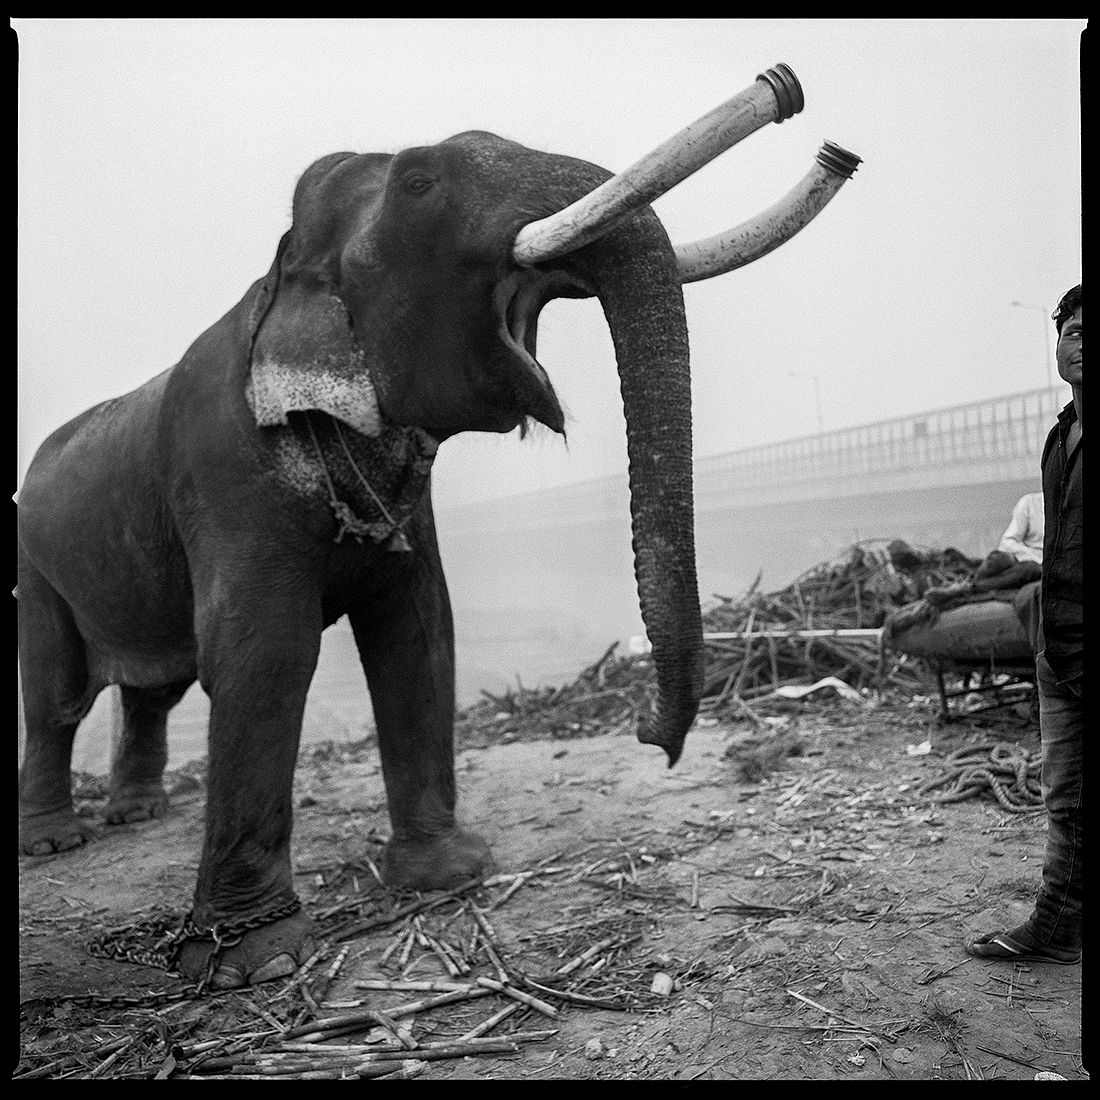 © Arun Nangla: The elephant in the room / MonoVisions Photography Awards 2018 winner